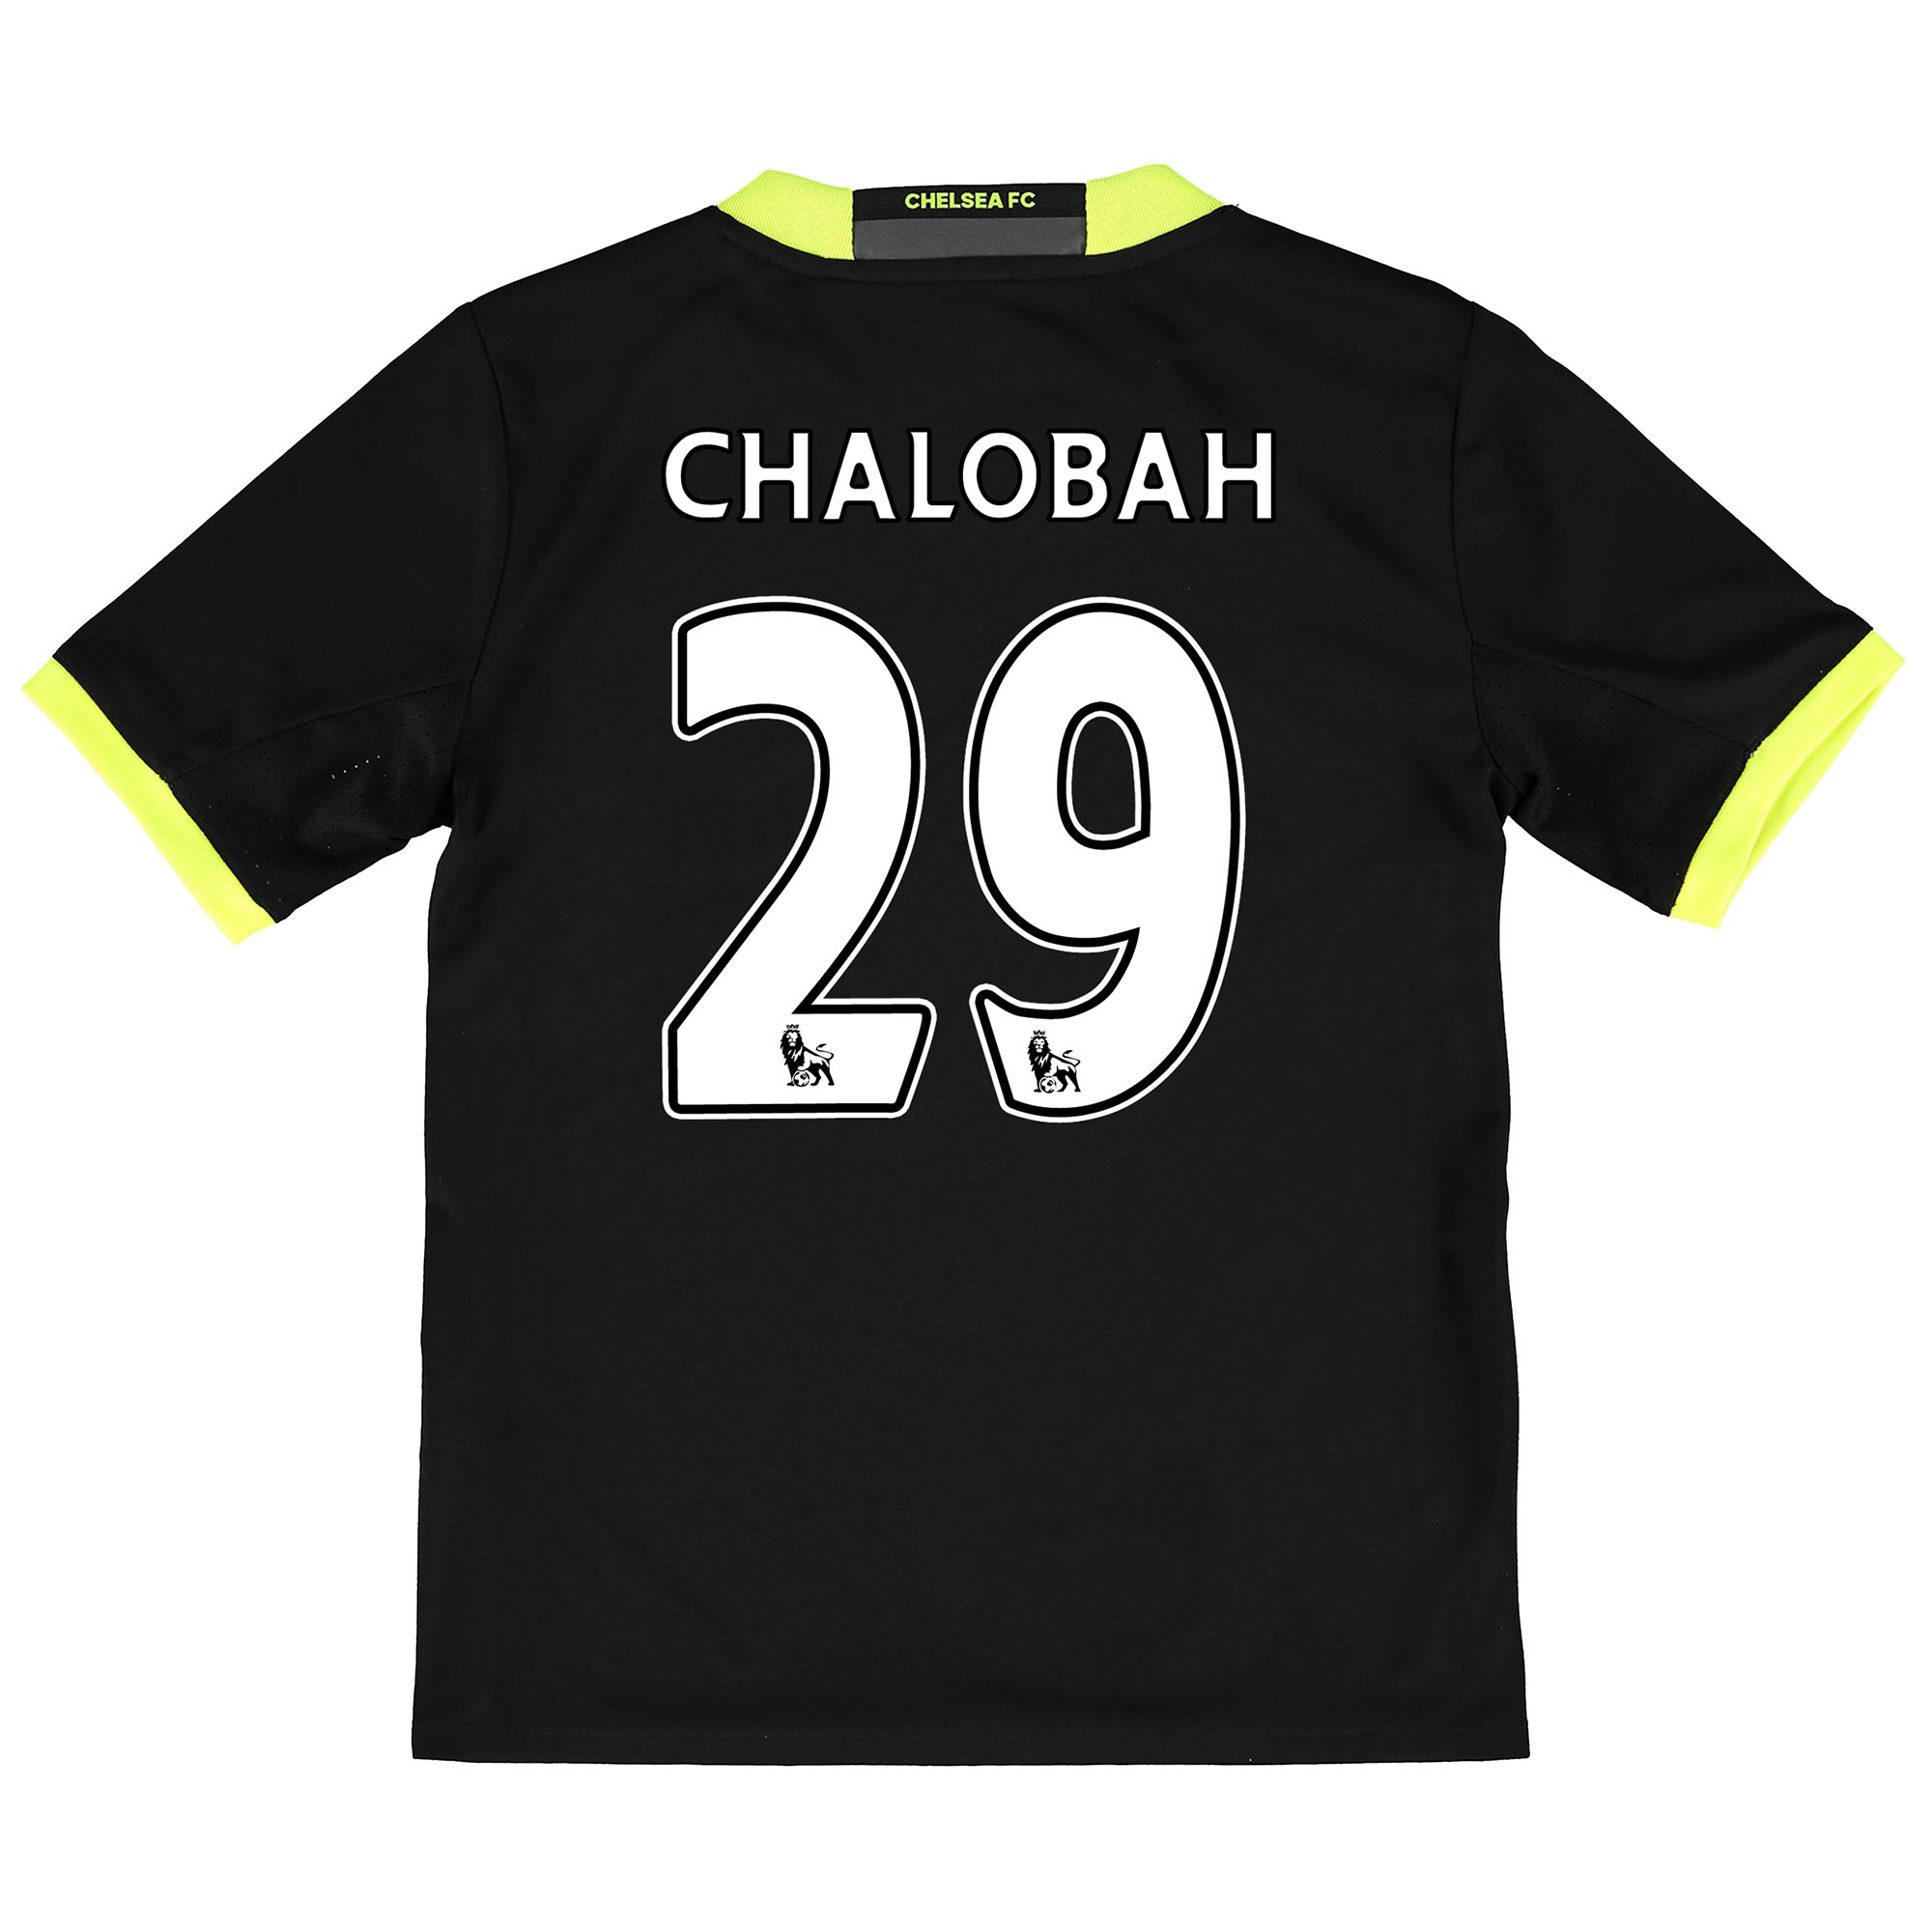 Chelsea Away Mini Kit 16-17 with Chalobah 29 printing